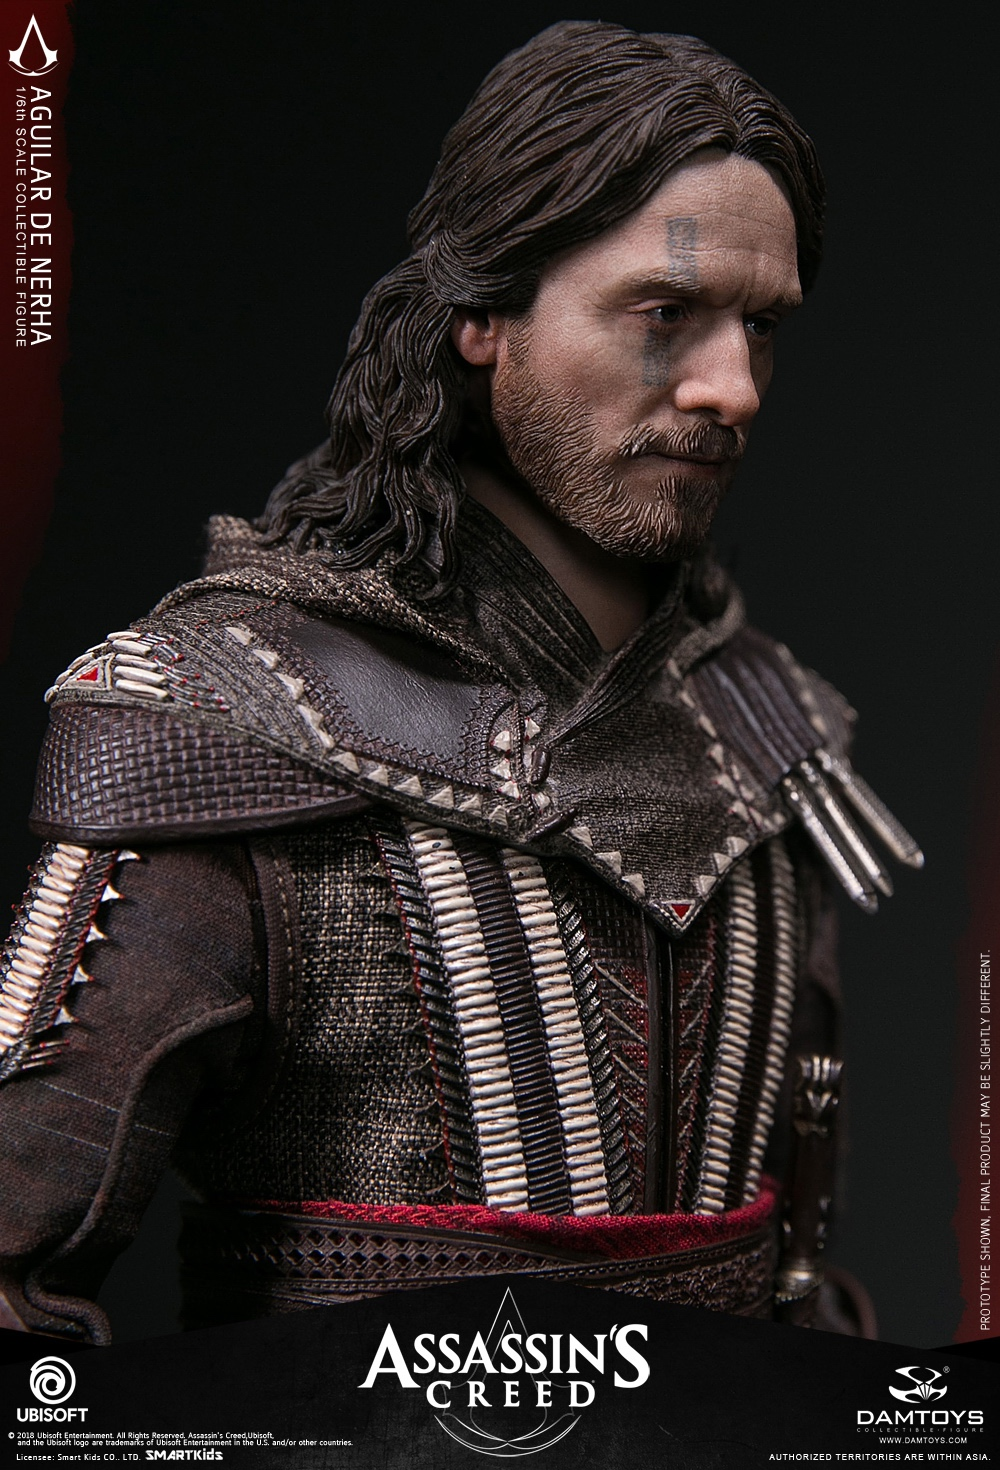 NEW PRODUCT: Damtoys–Assassin's Creed –1/6th scale Aguilar Collectible Figure Specifications 130724f0p0x6c98cqqbyzc